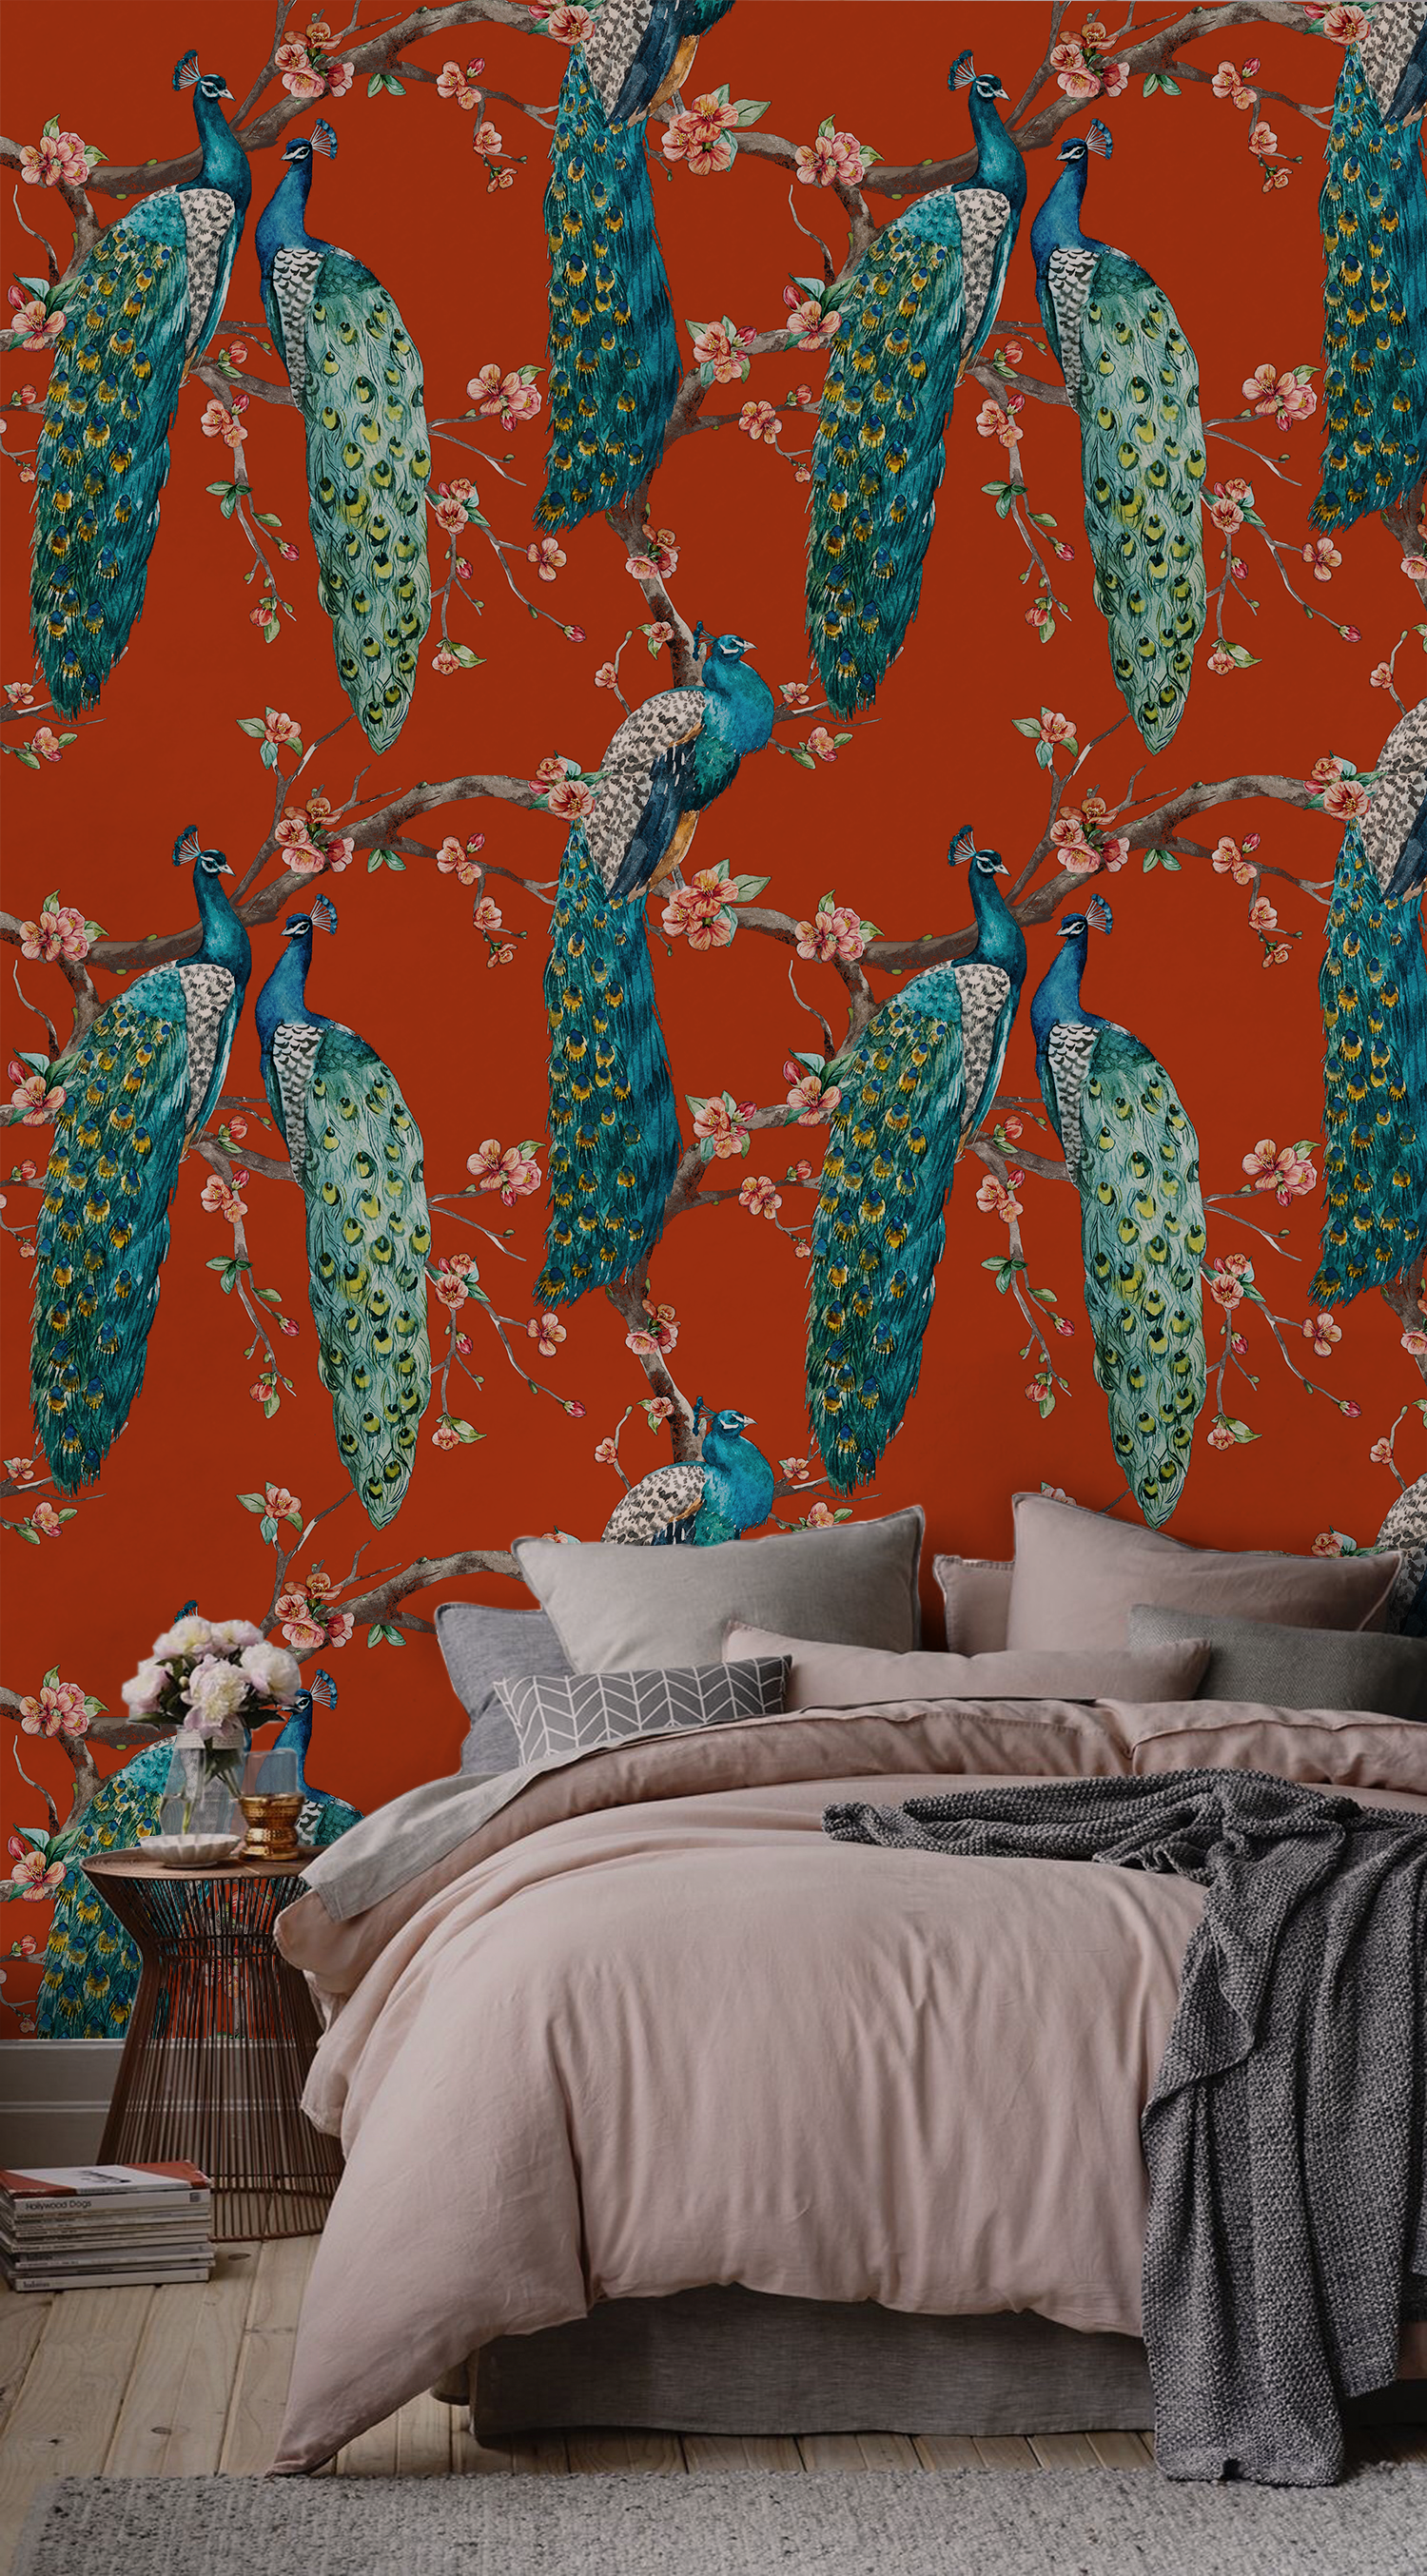 Red Peacock Removable wallpaper Wall covering Peel and